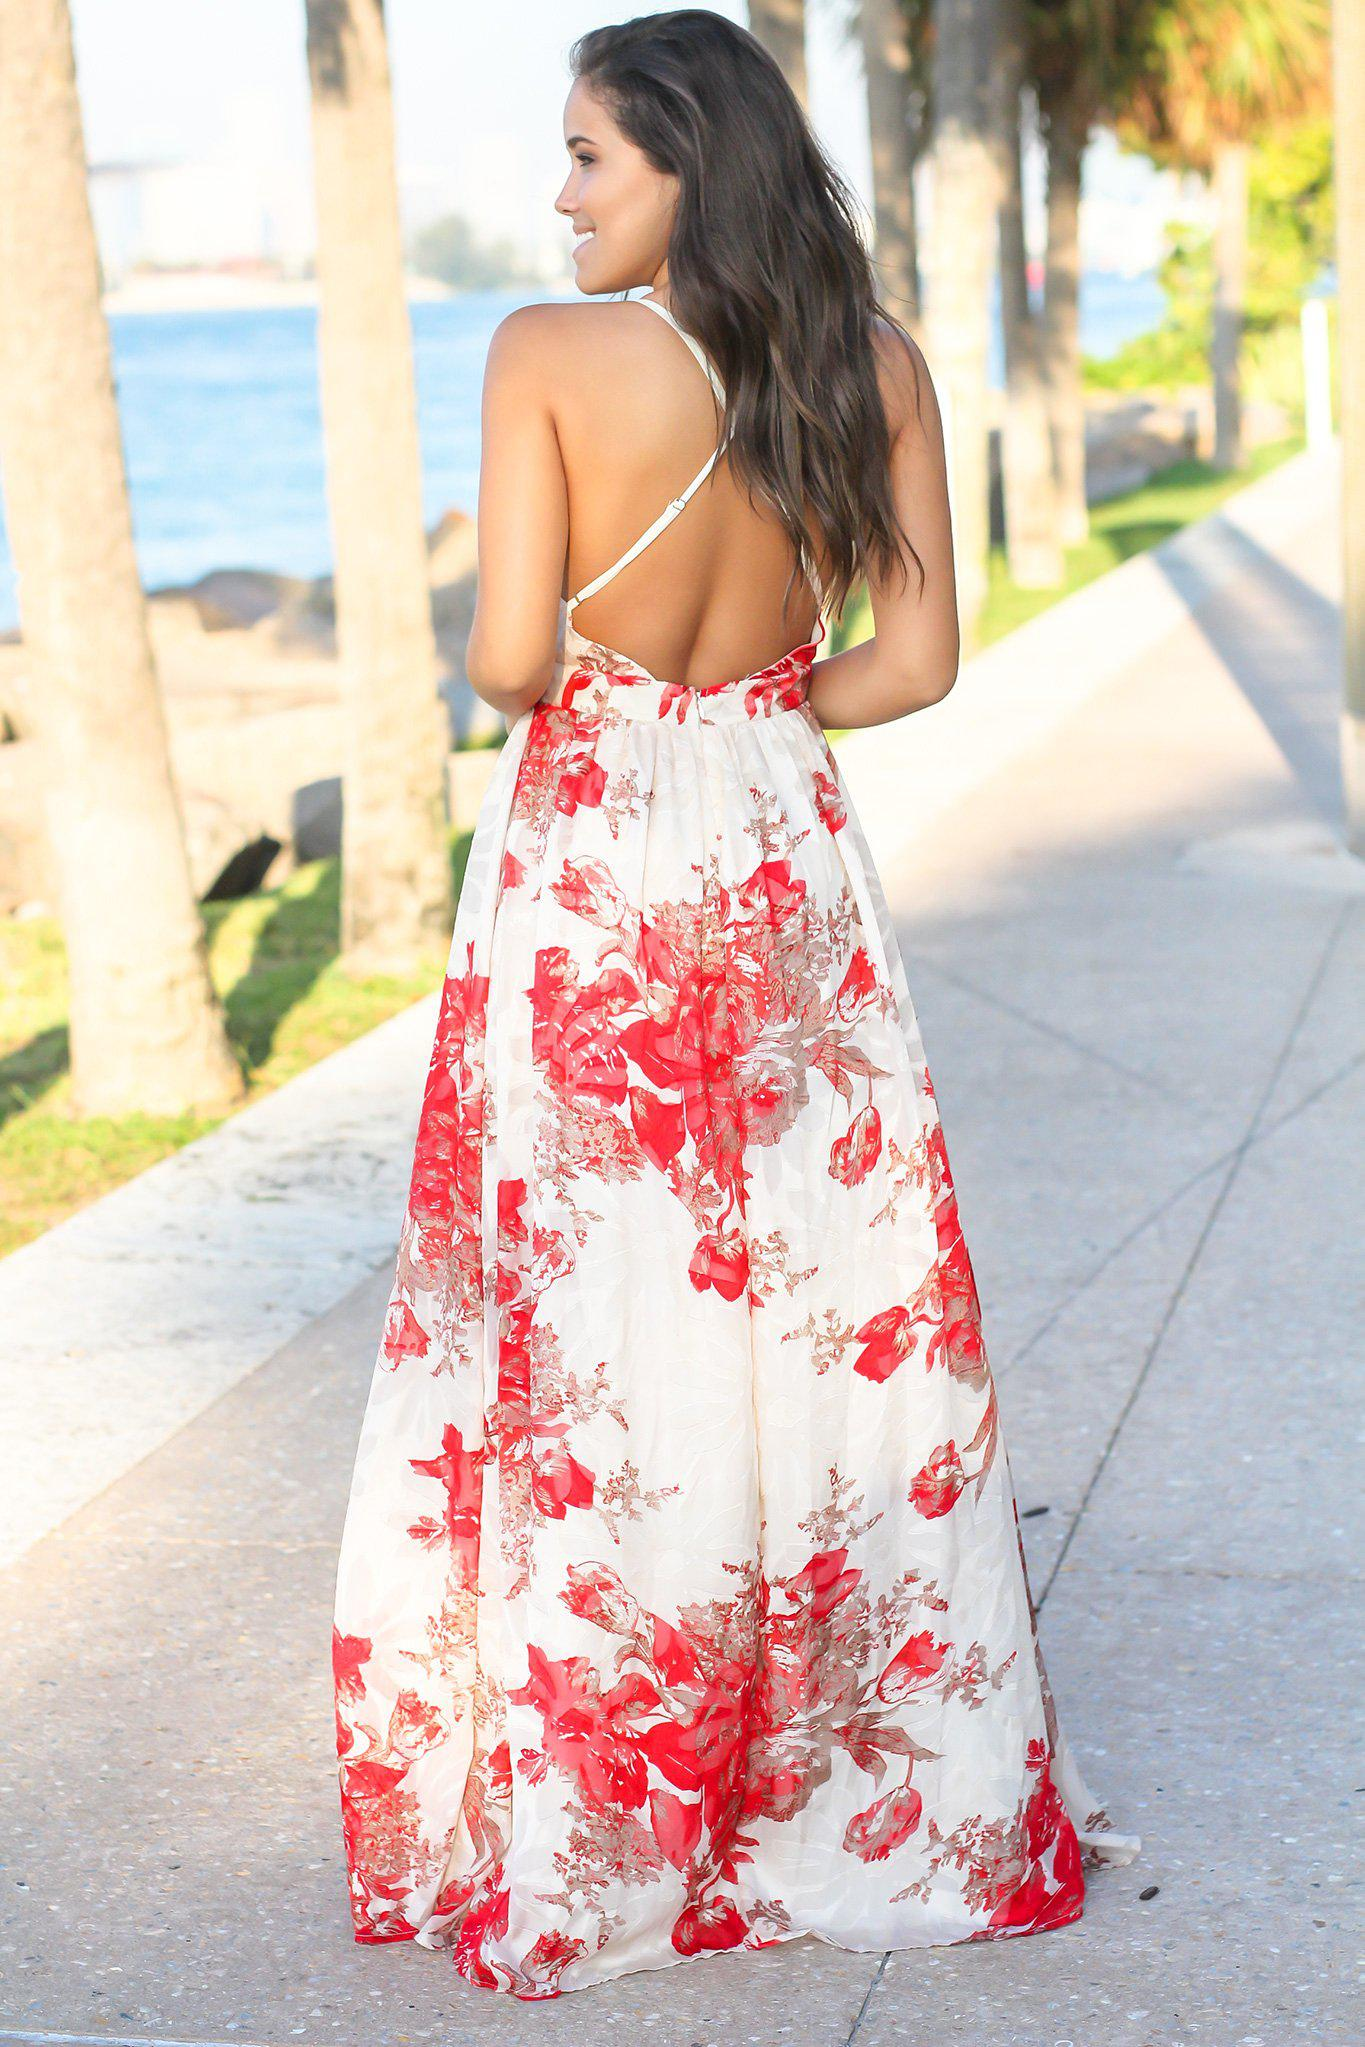 Cream and Red Floral Chiffon Maxi Dress